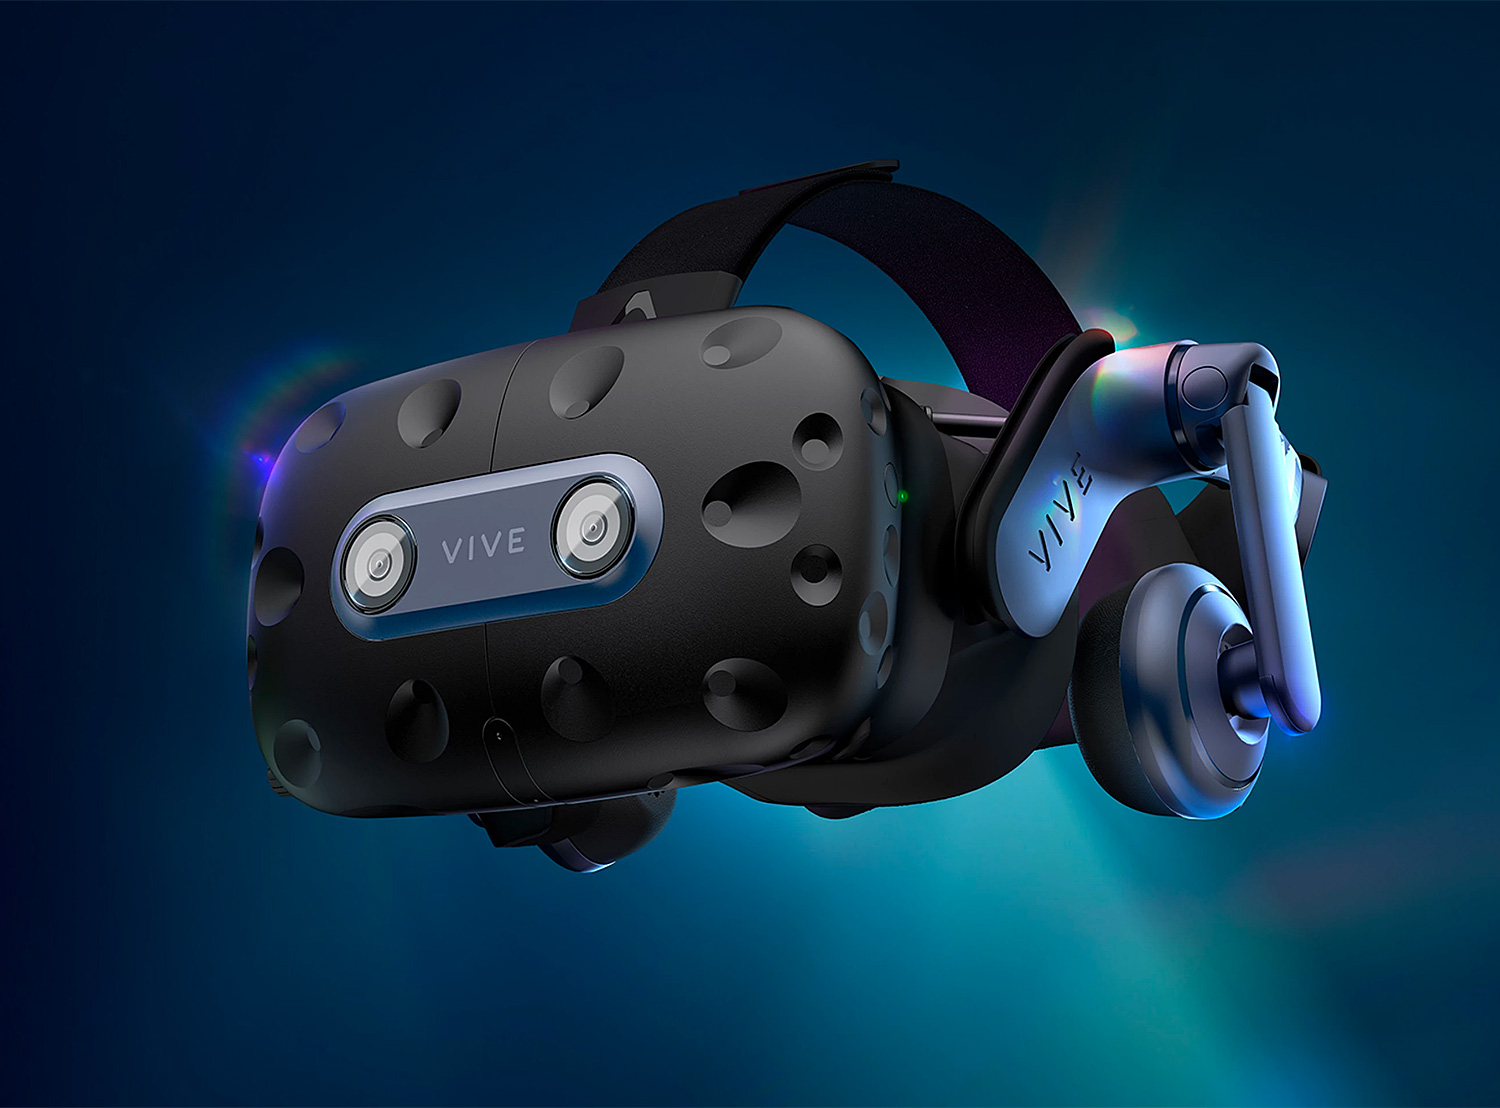 HTC's Vive Pro 2 Gives You PC VR in 5K at werd.com